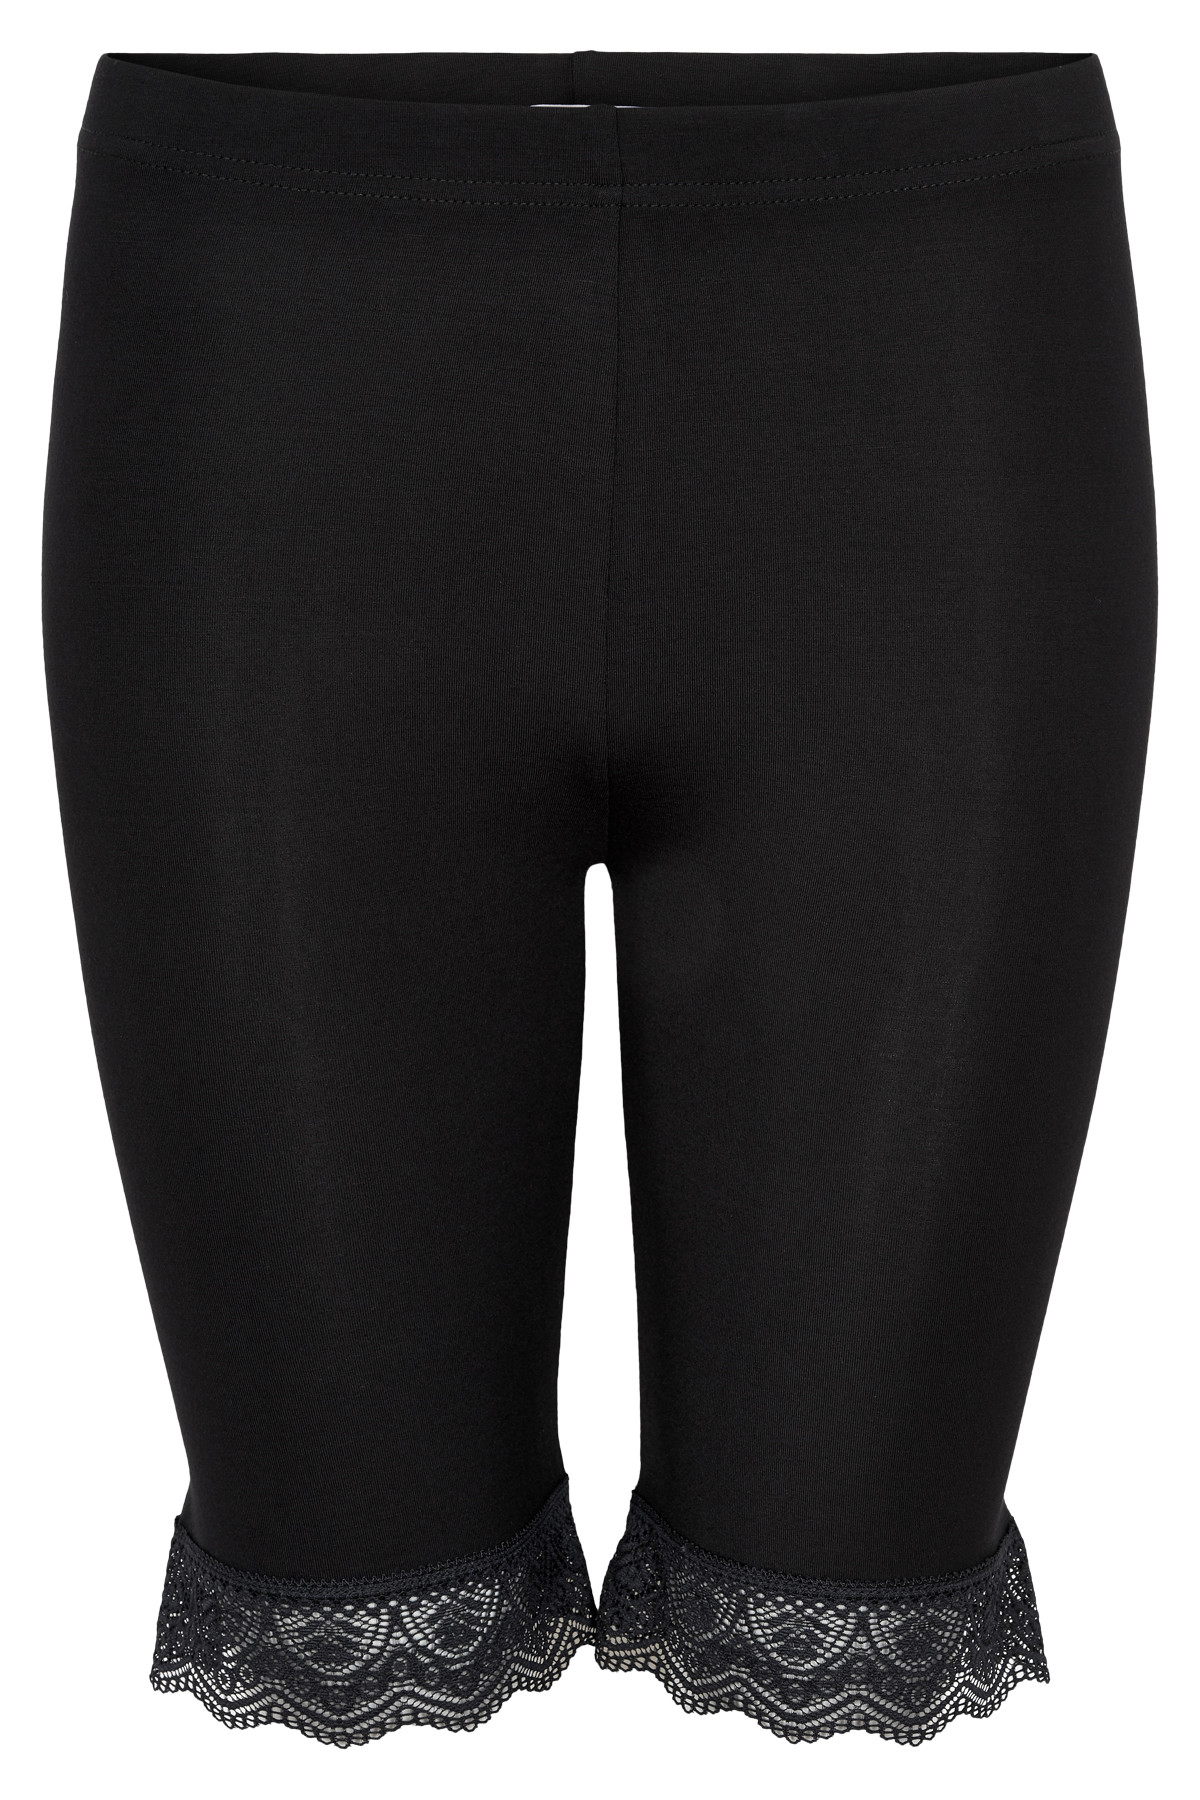 NOA NOA SHORT LEGGINGS 1-9845-2 00000 (Black, M)